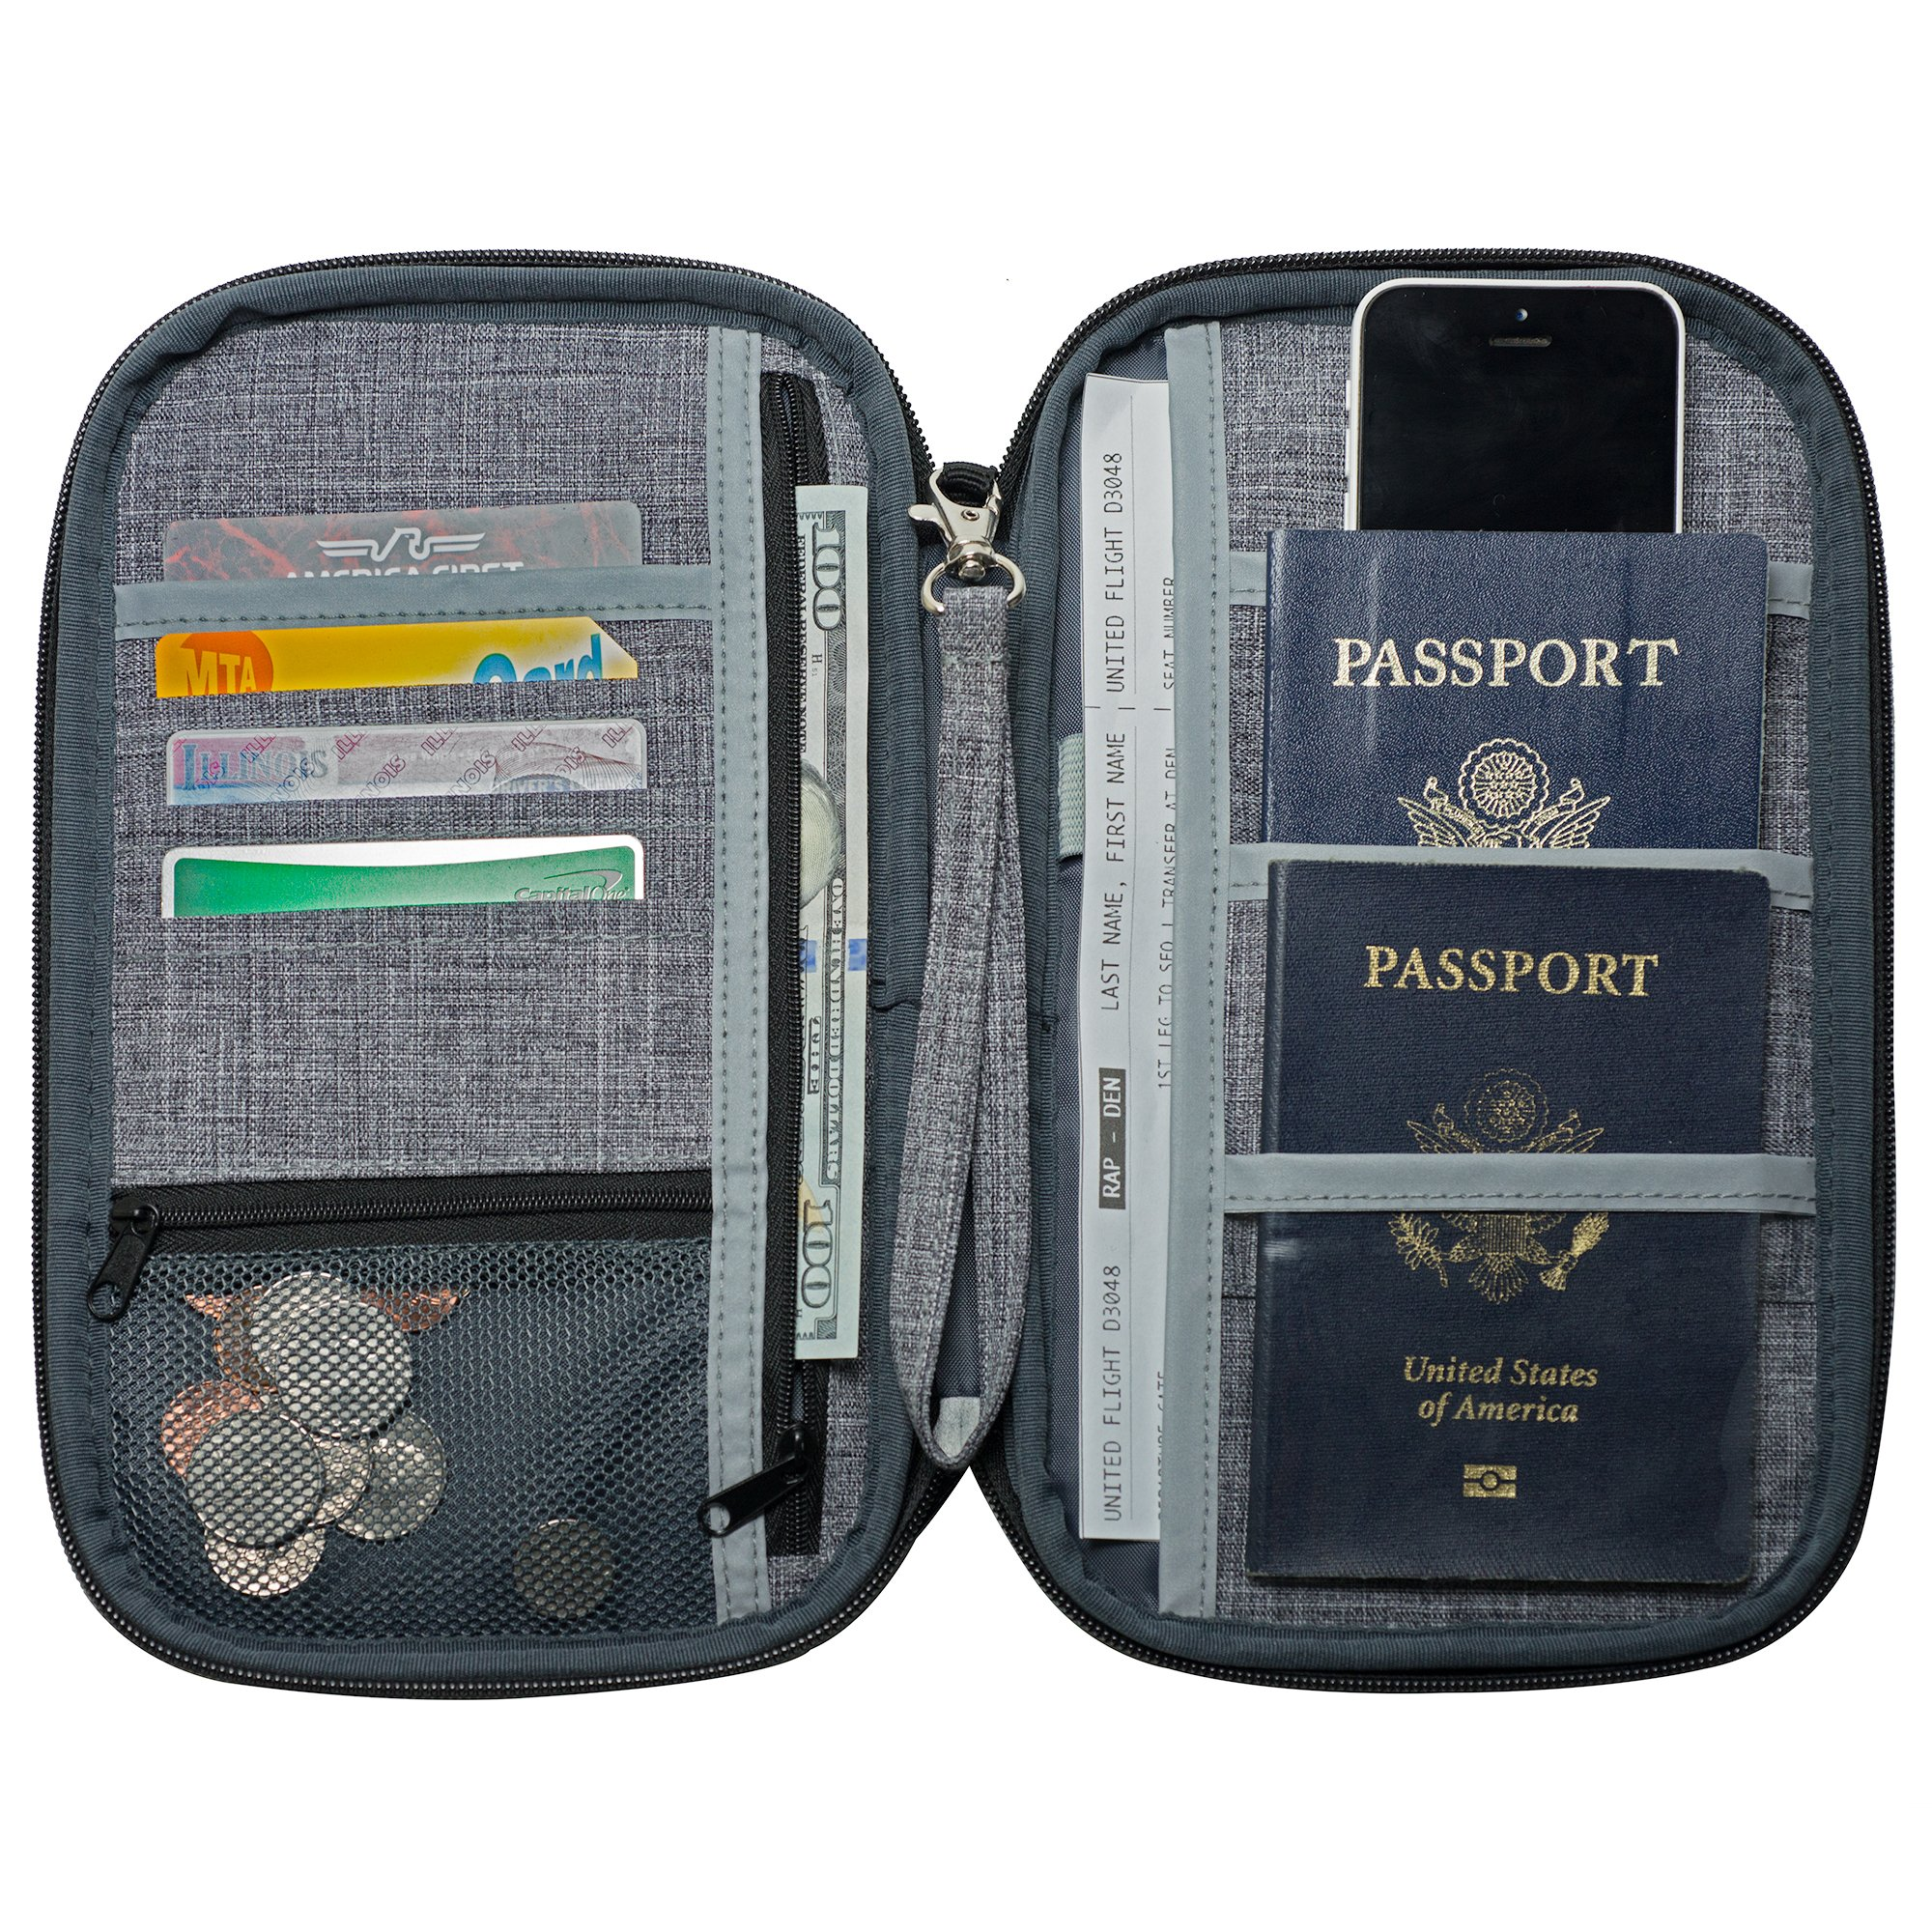 NeatPack RFID Travel Wallet, Document Organizer & Passport Holder, Grey